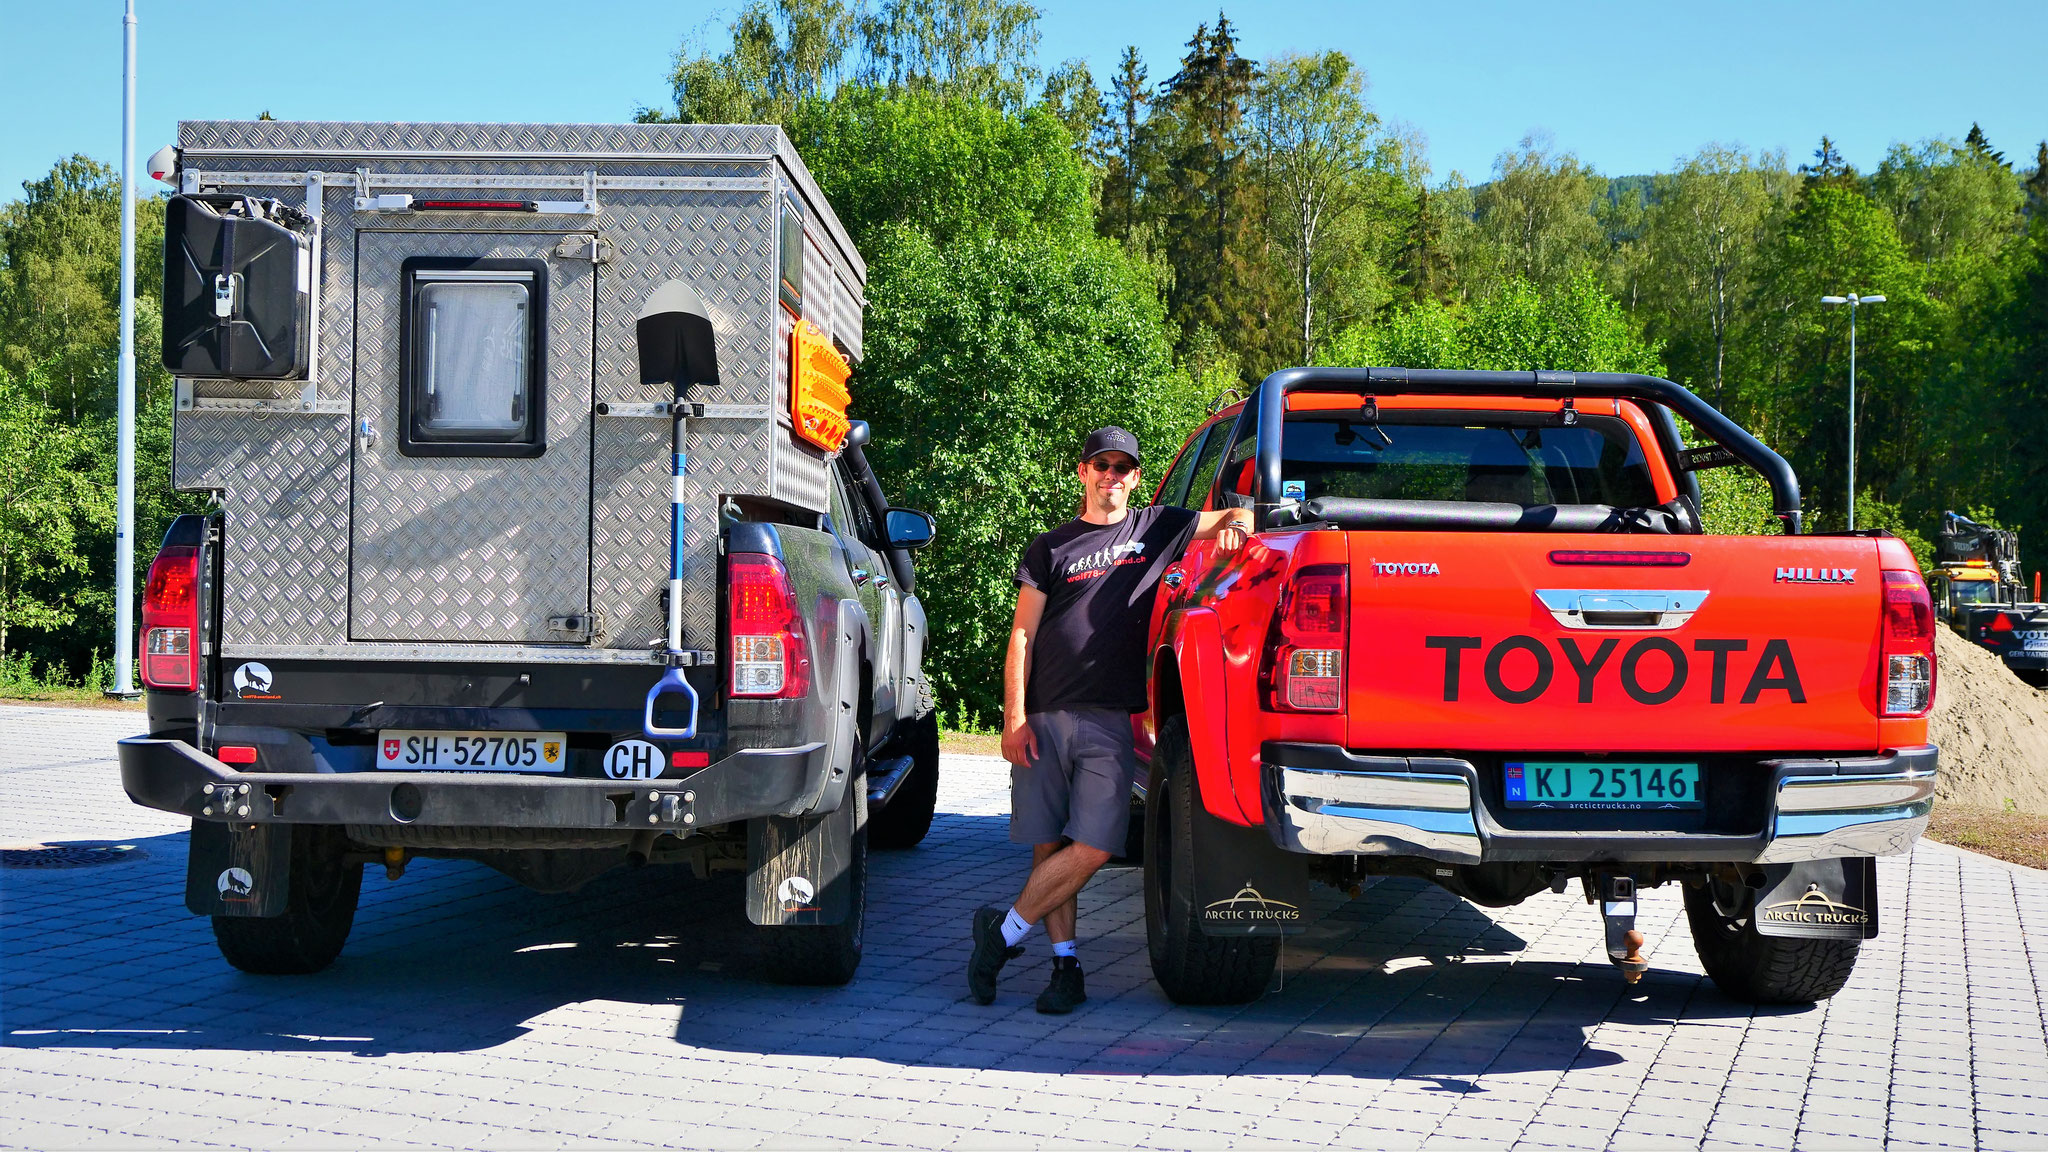 Arctic Trucks Norwegen #ProjektBlackwolf wolf78 overland explore without no limits Toyota Hilux AT33 AT35 Travel Camping EXKAB roadtrip offroad Overlandingnomads Overlandbound wolf78-overland.ch